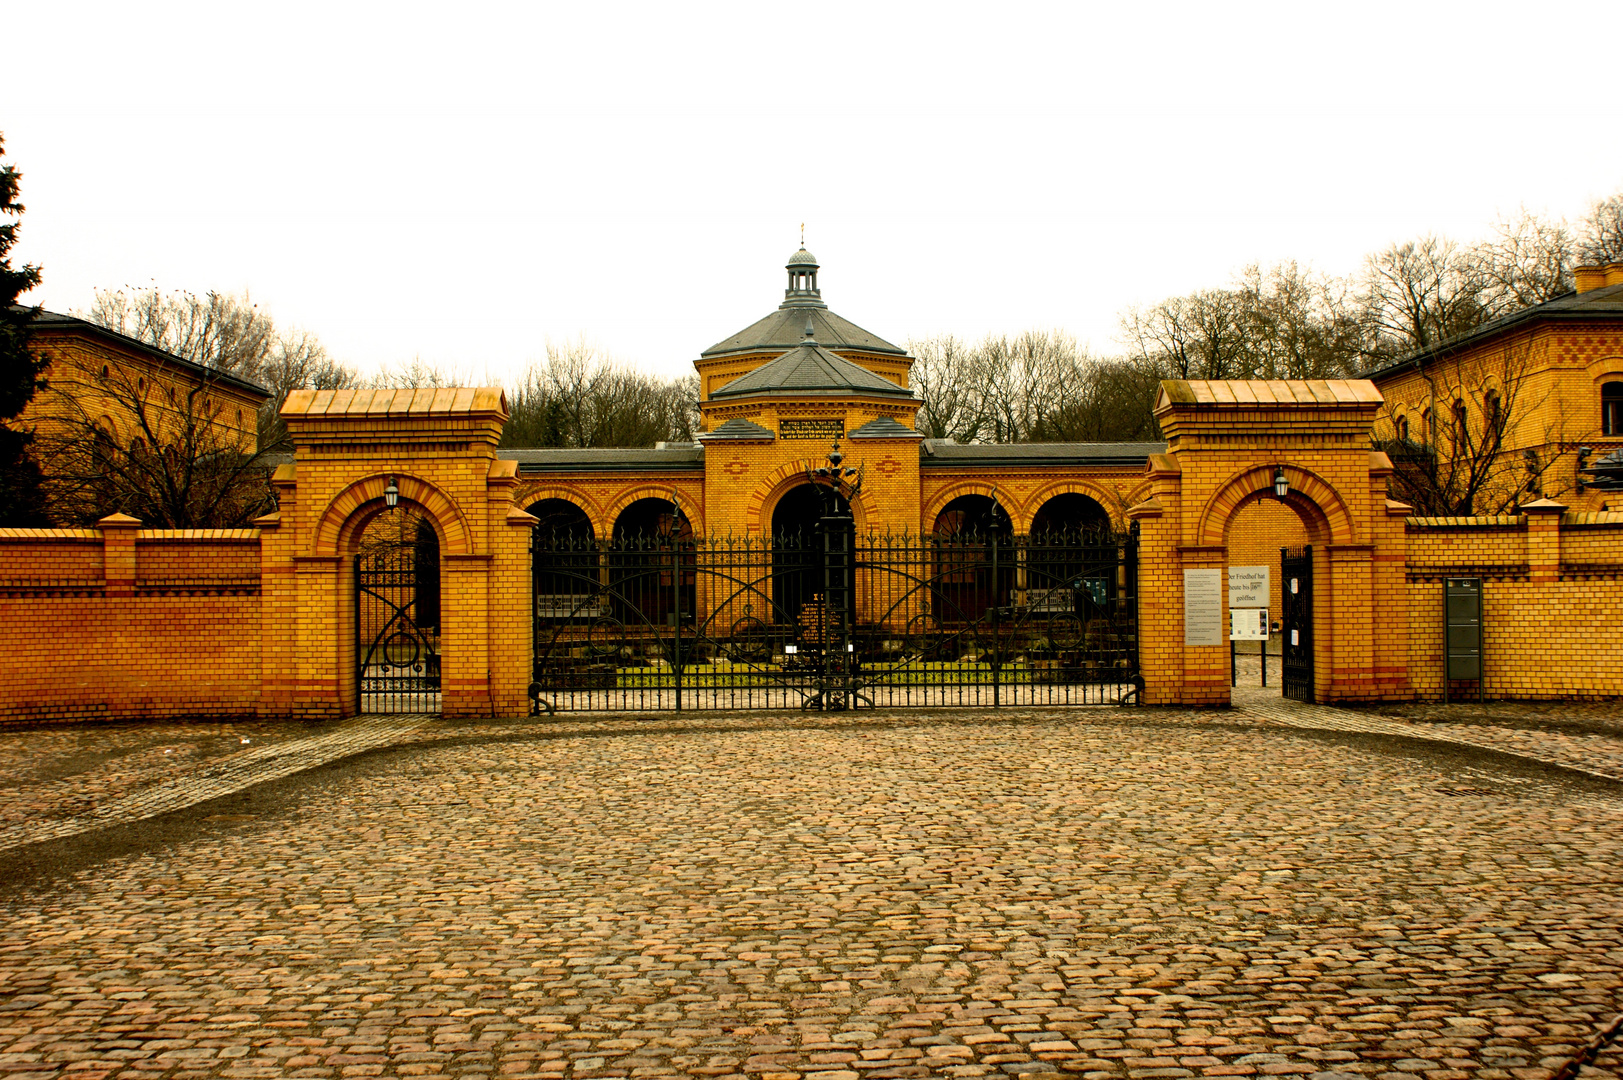 Entrance of the Jewish Cemetery in Berlin-Weissensee